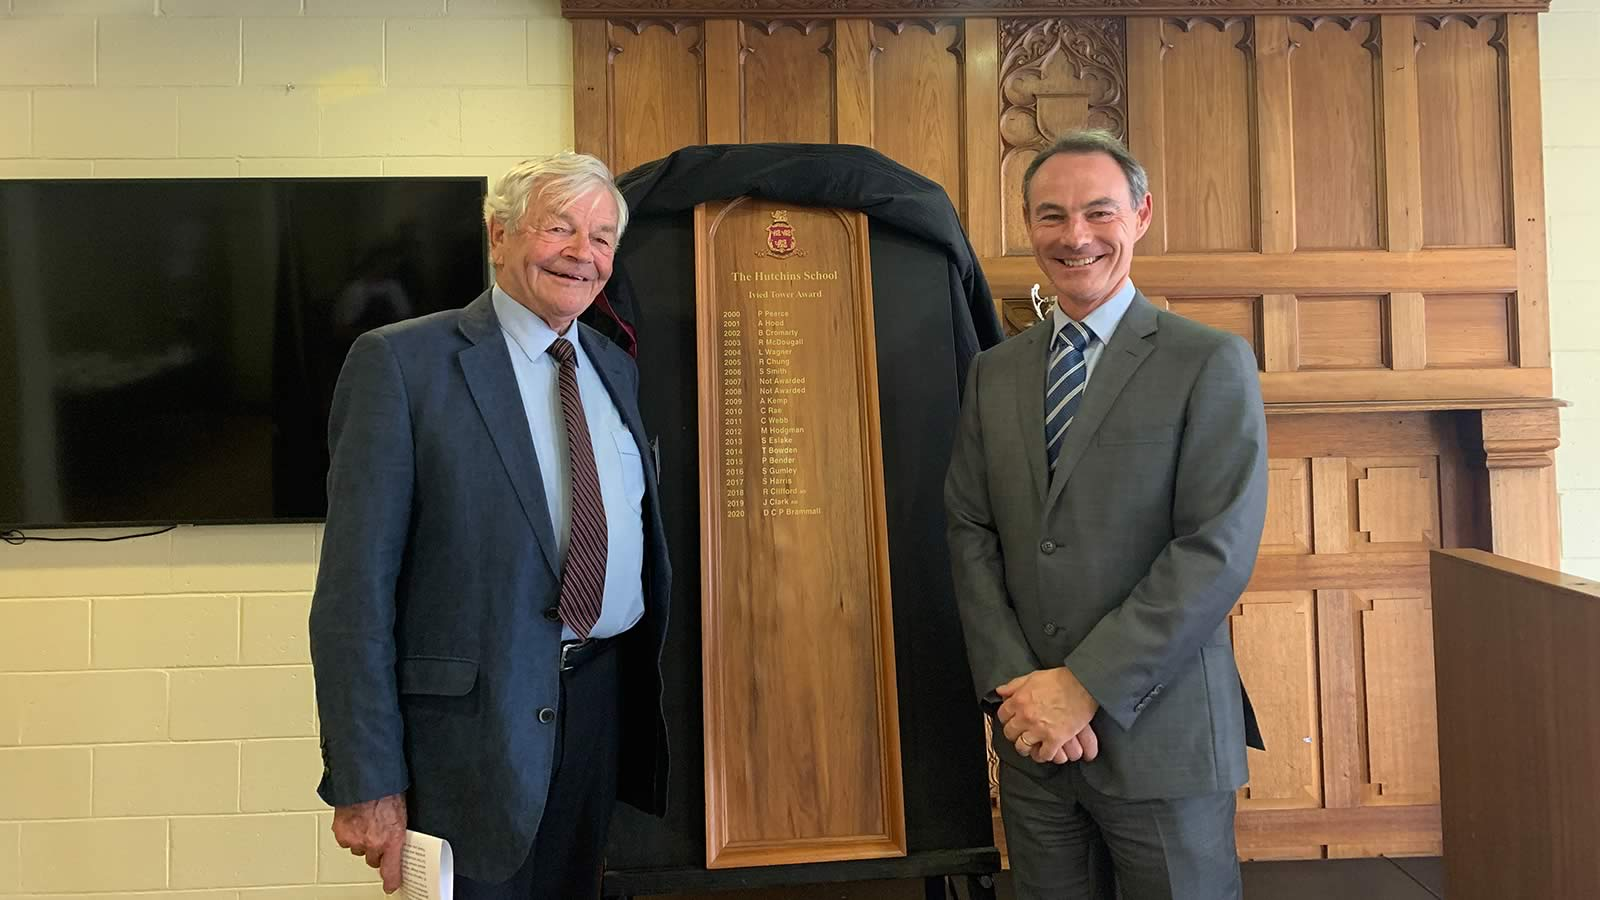 David Brammall ('56) with Headmaster, Dr Rob McEwan